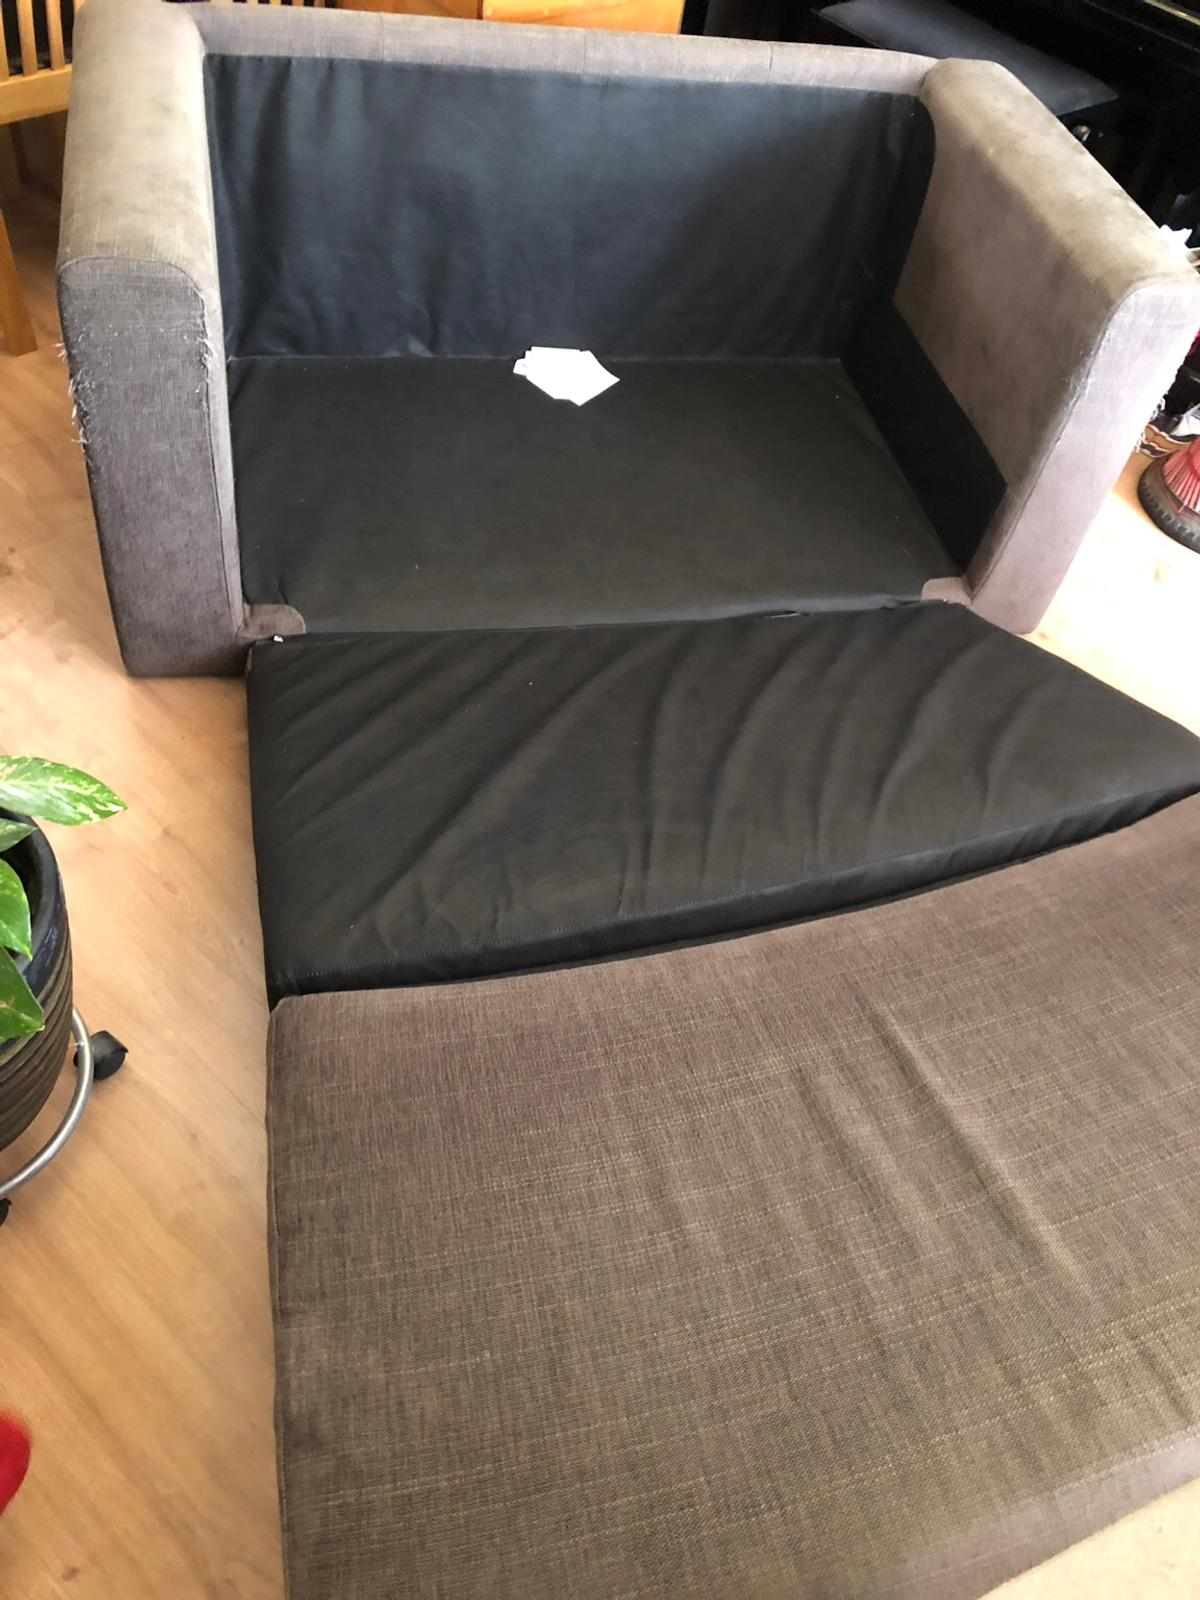 Ikea Askeby 2 Seat Sofa Bed In N21 London Borough Of Enfield For 30 00 For Sale Shpock